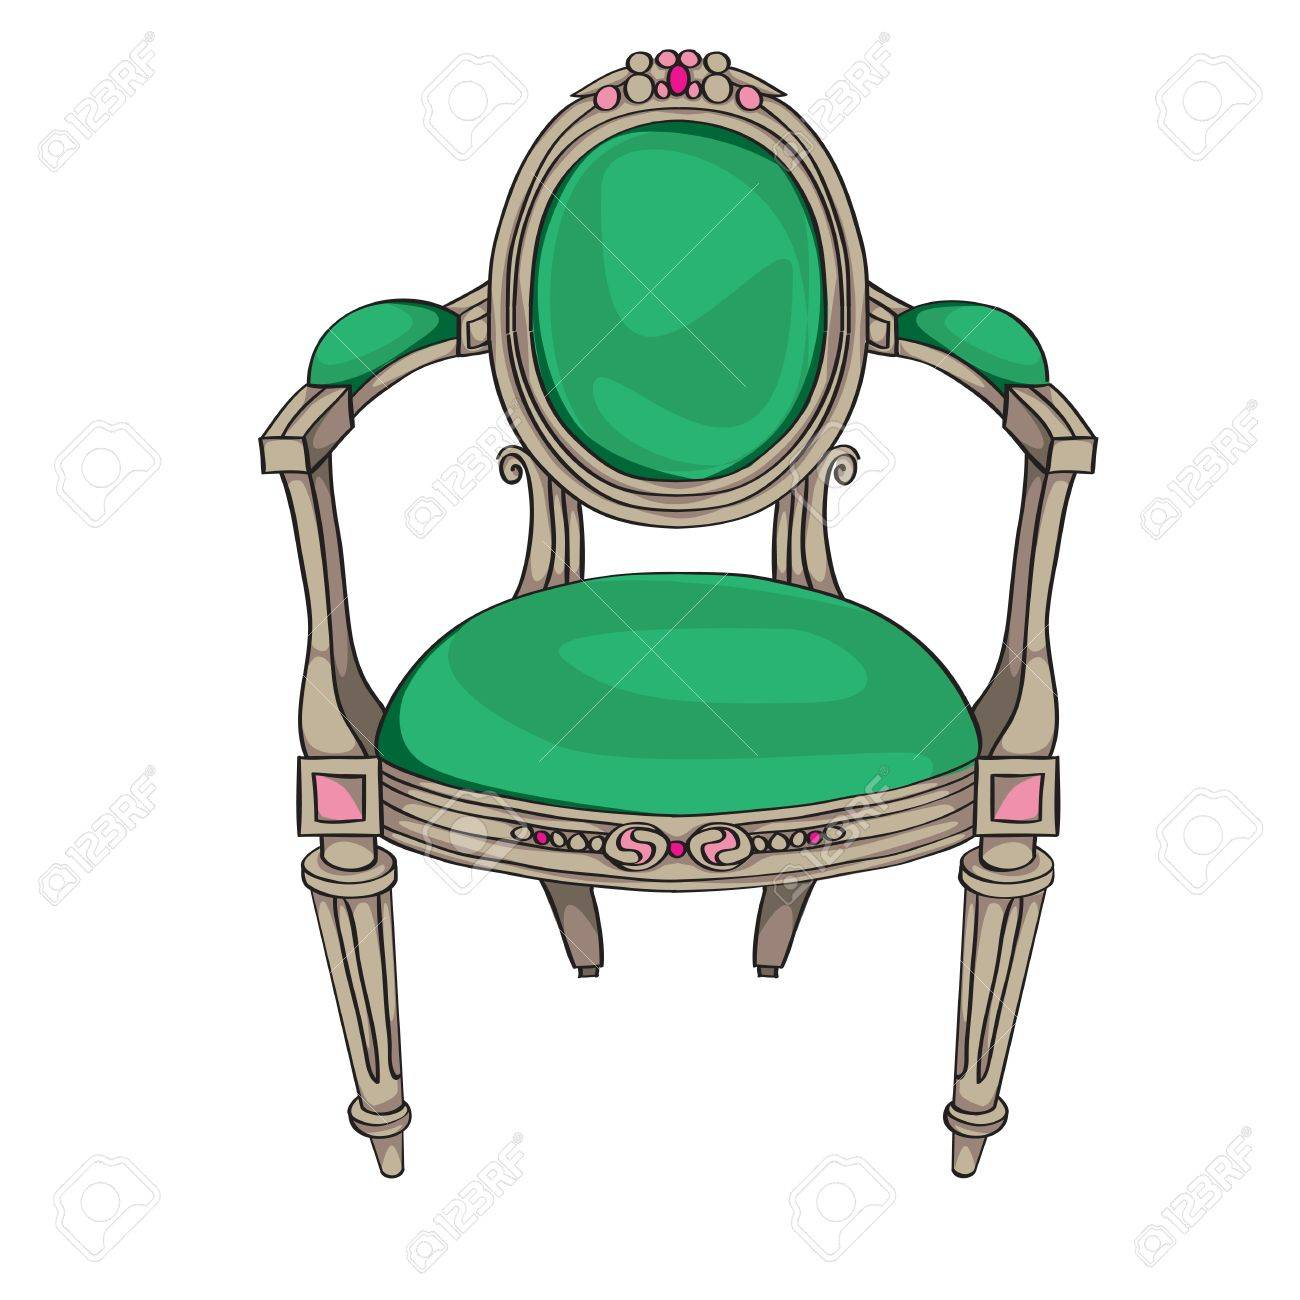 Antique furniture chair - Classic Chair Colored Doodle Hand Drawn Illustration Of An Antique Furniture Piece With Green Upholstery